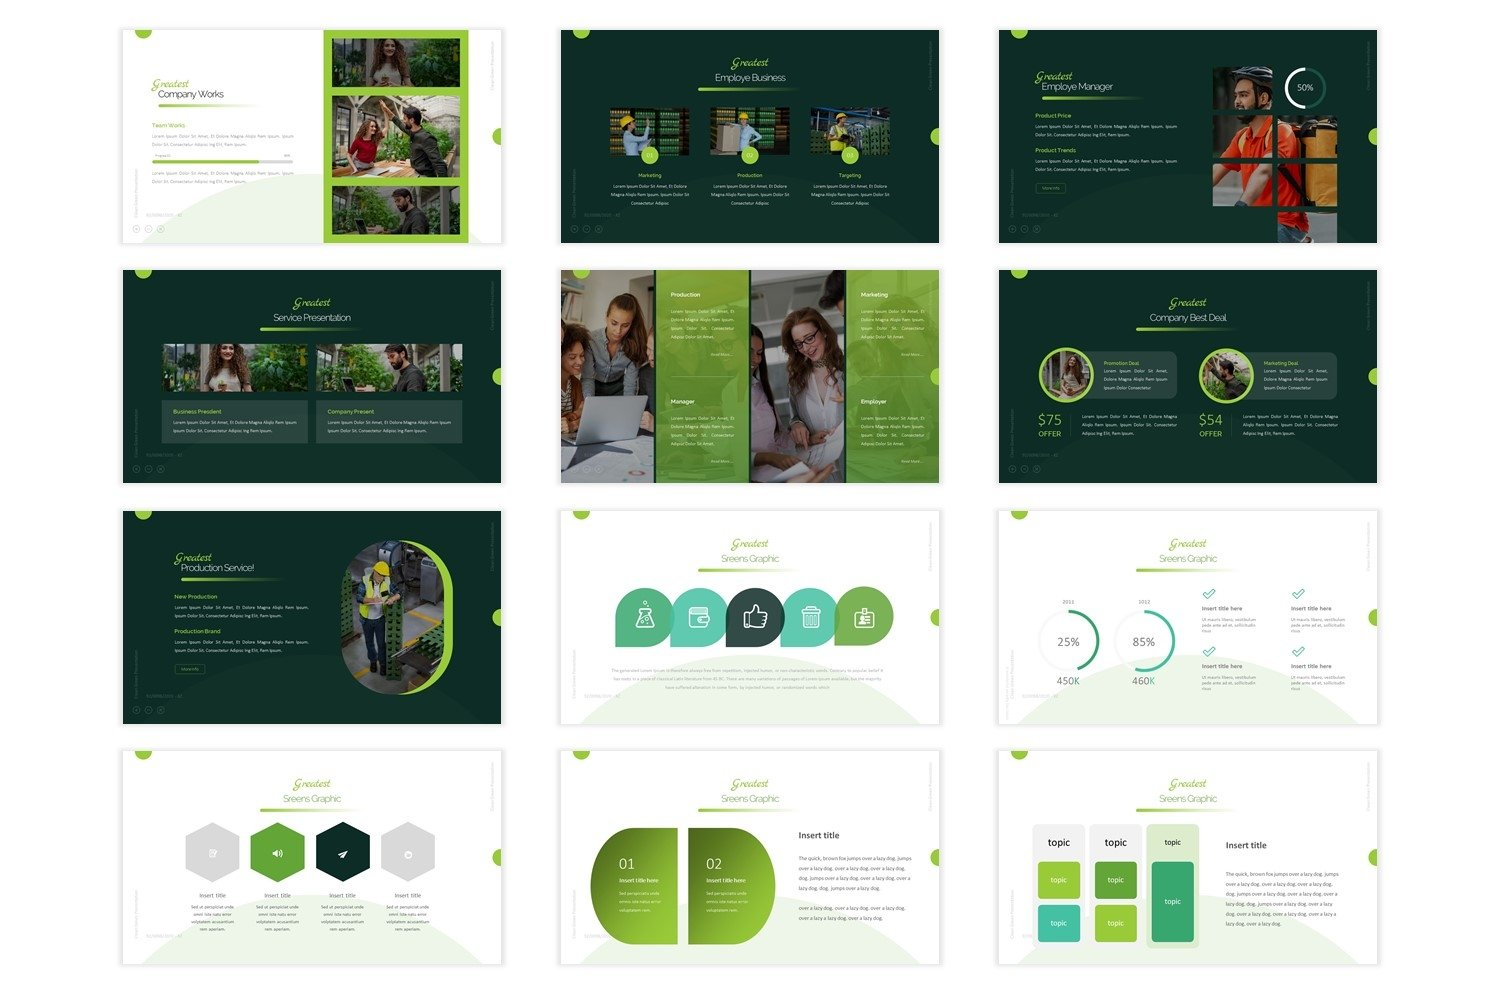 Greatest - Powerpoint Template example image 4